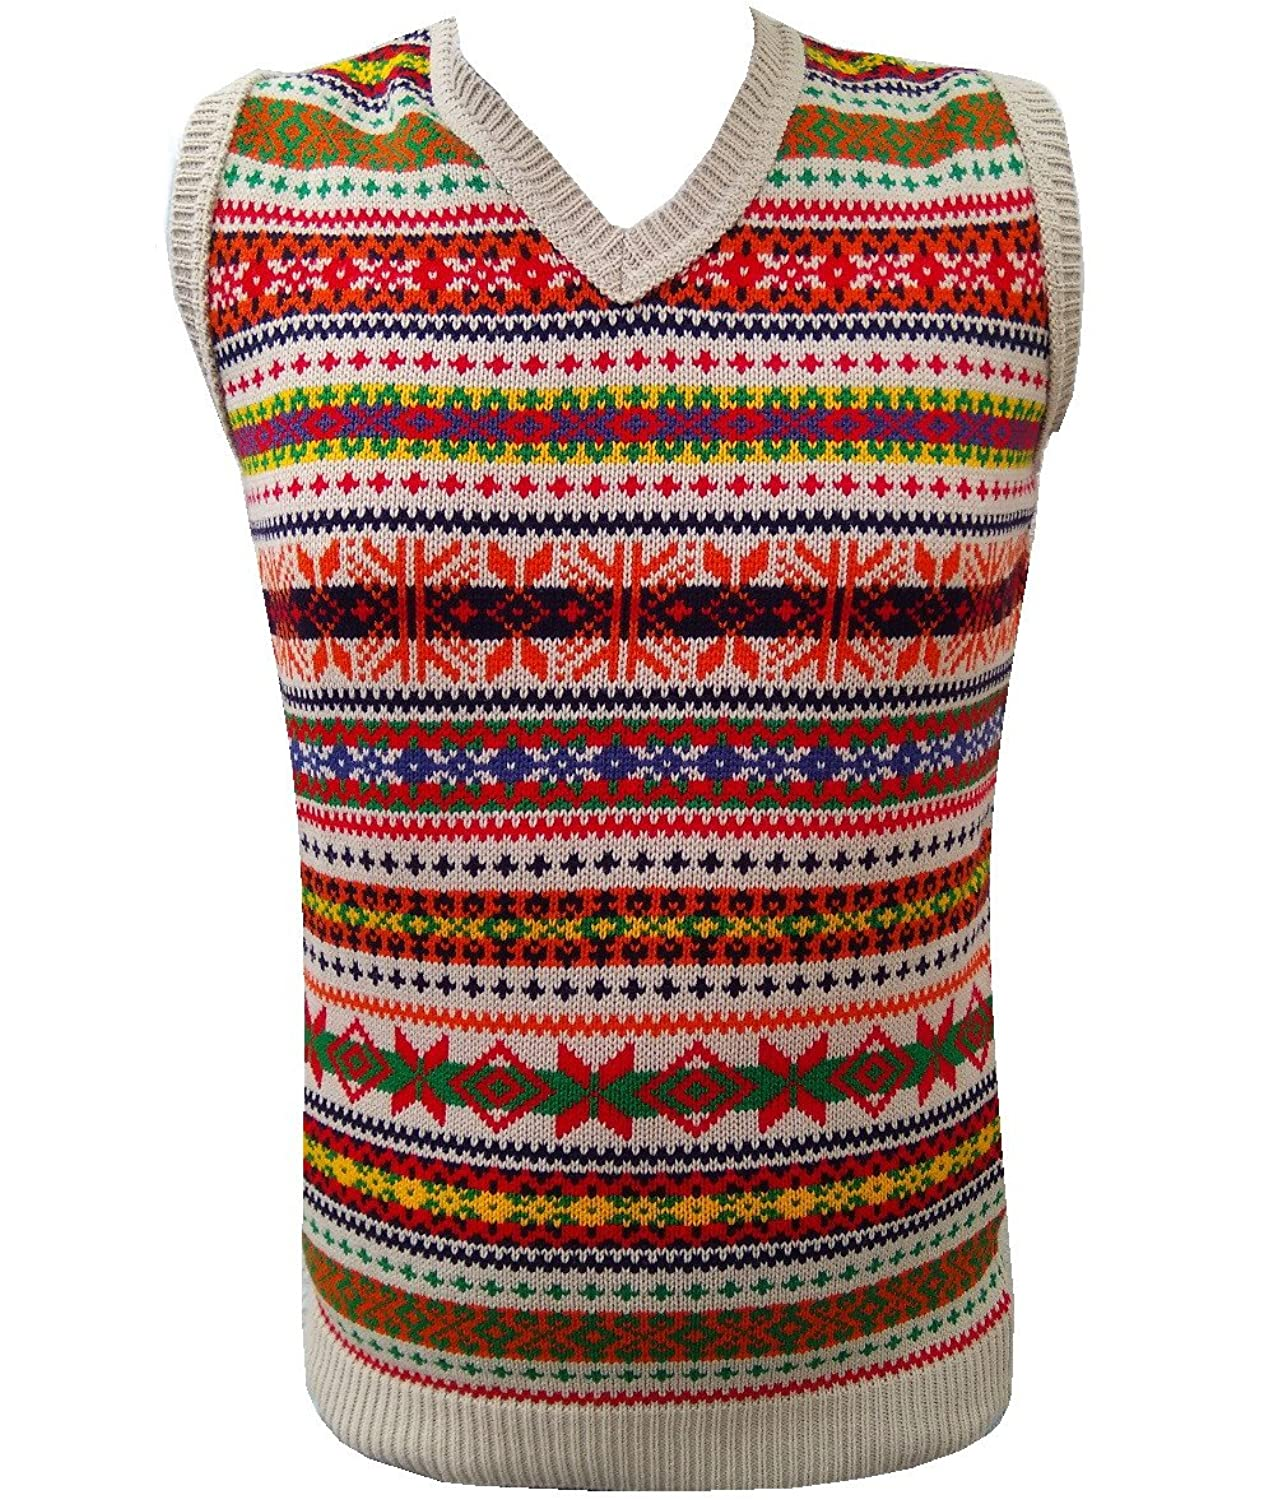 Men's Vintage Vests, Sweater Vests London Knitwear Gallery Retro Vintage Knitwear Tanktop Sleeveless Golf Sweater £19.99 AT vintagedancer.com